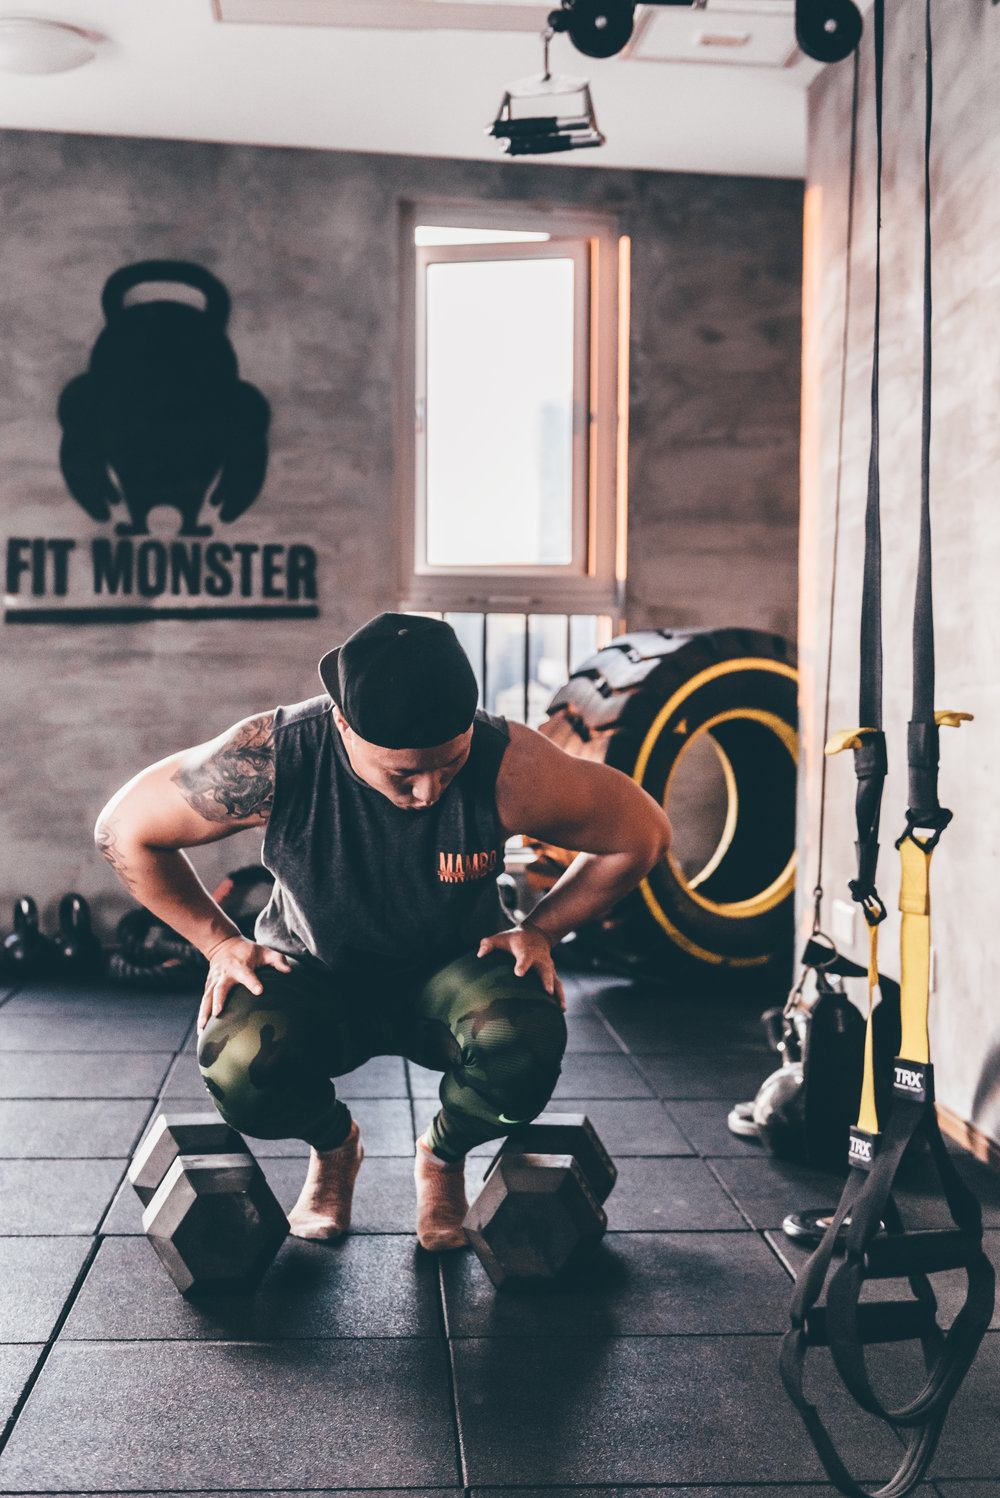 fit.monster-15.jpg